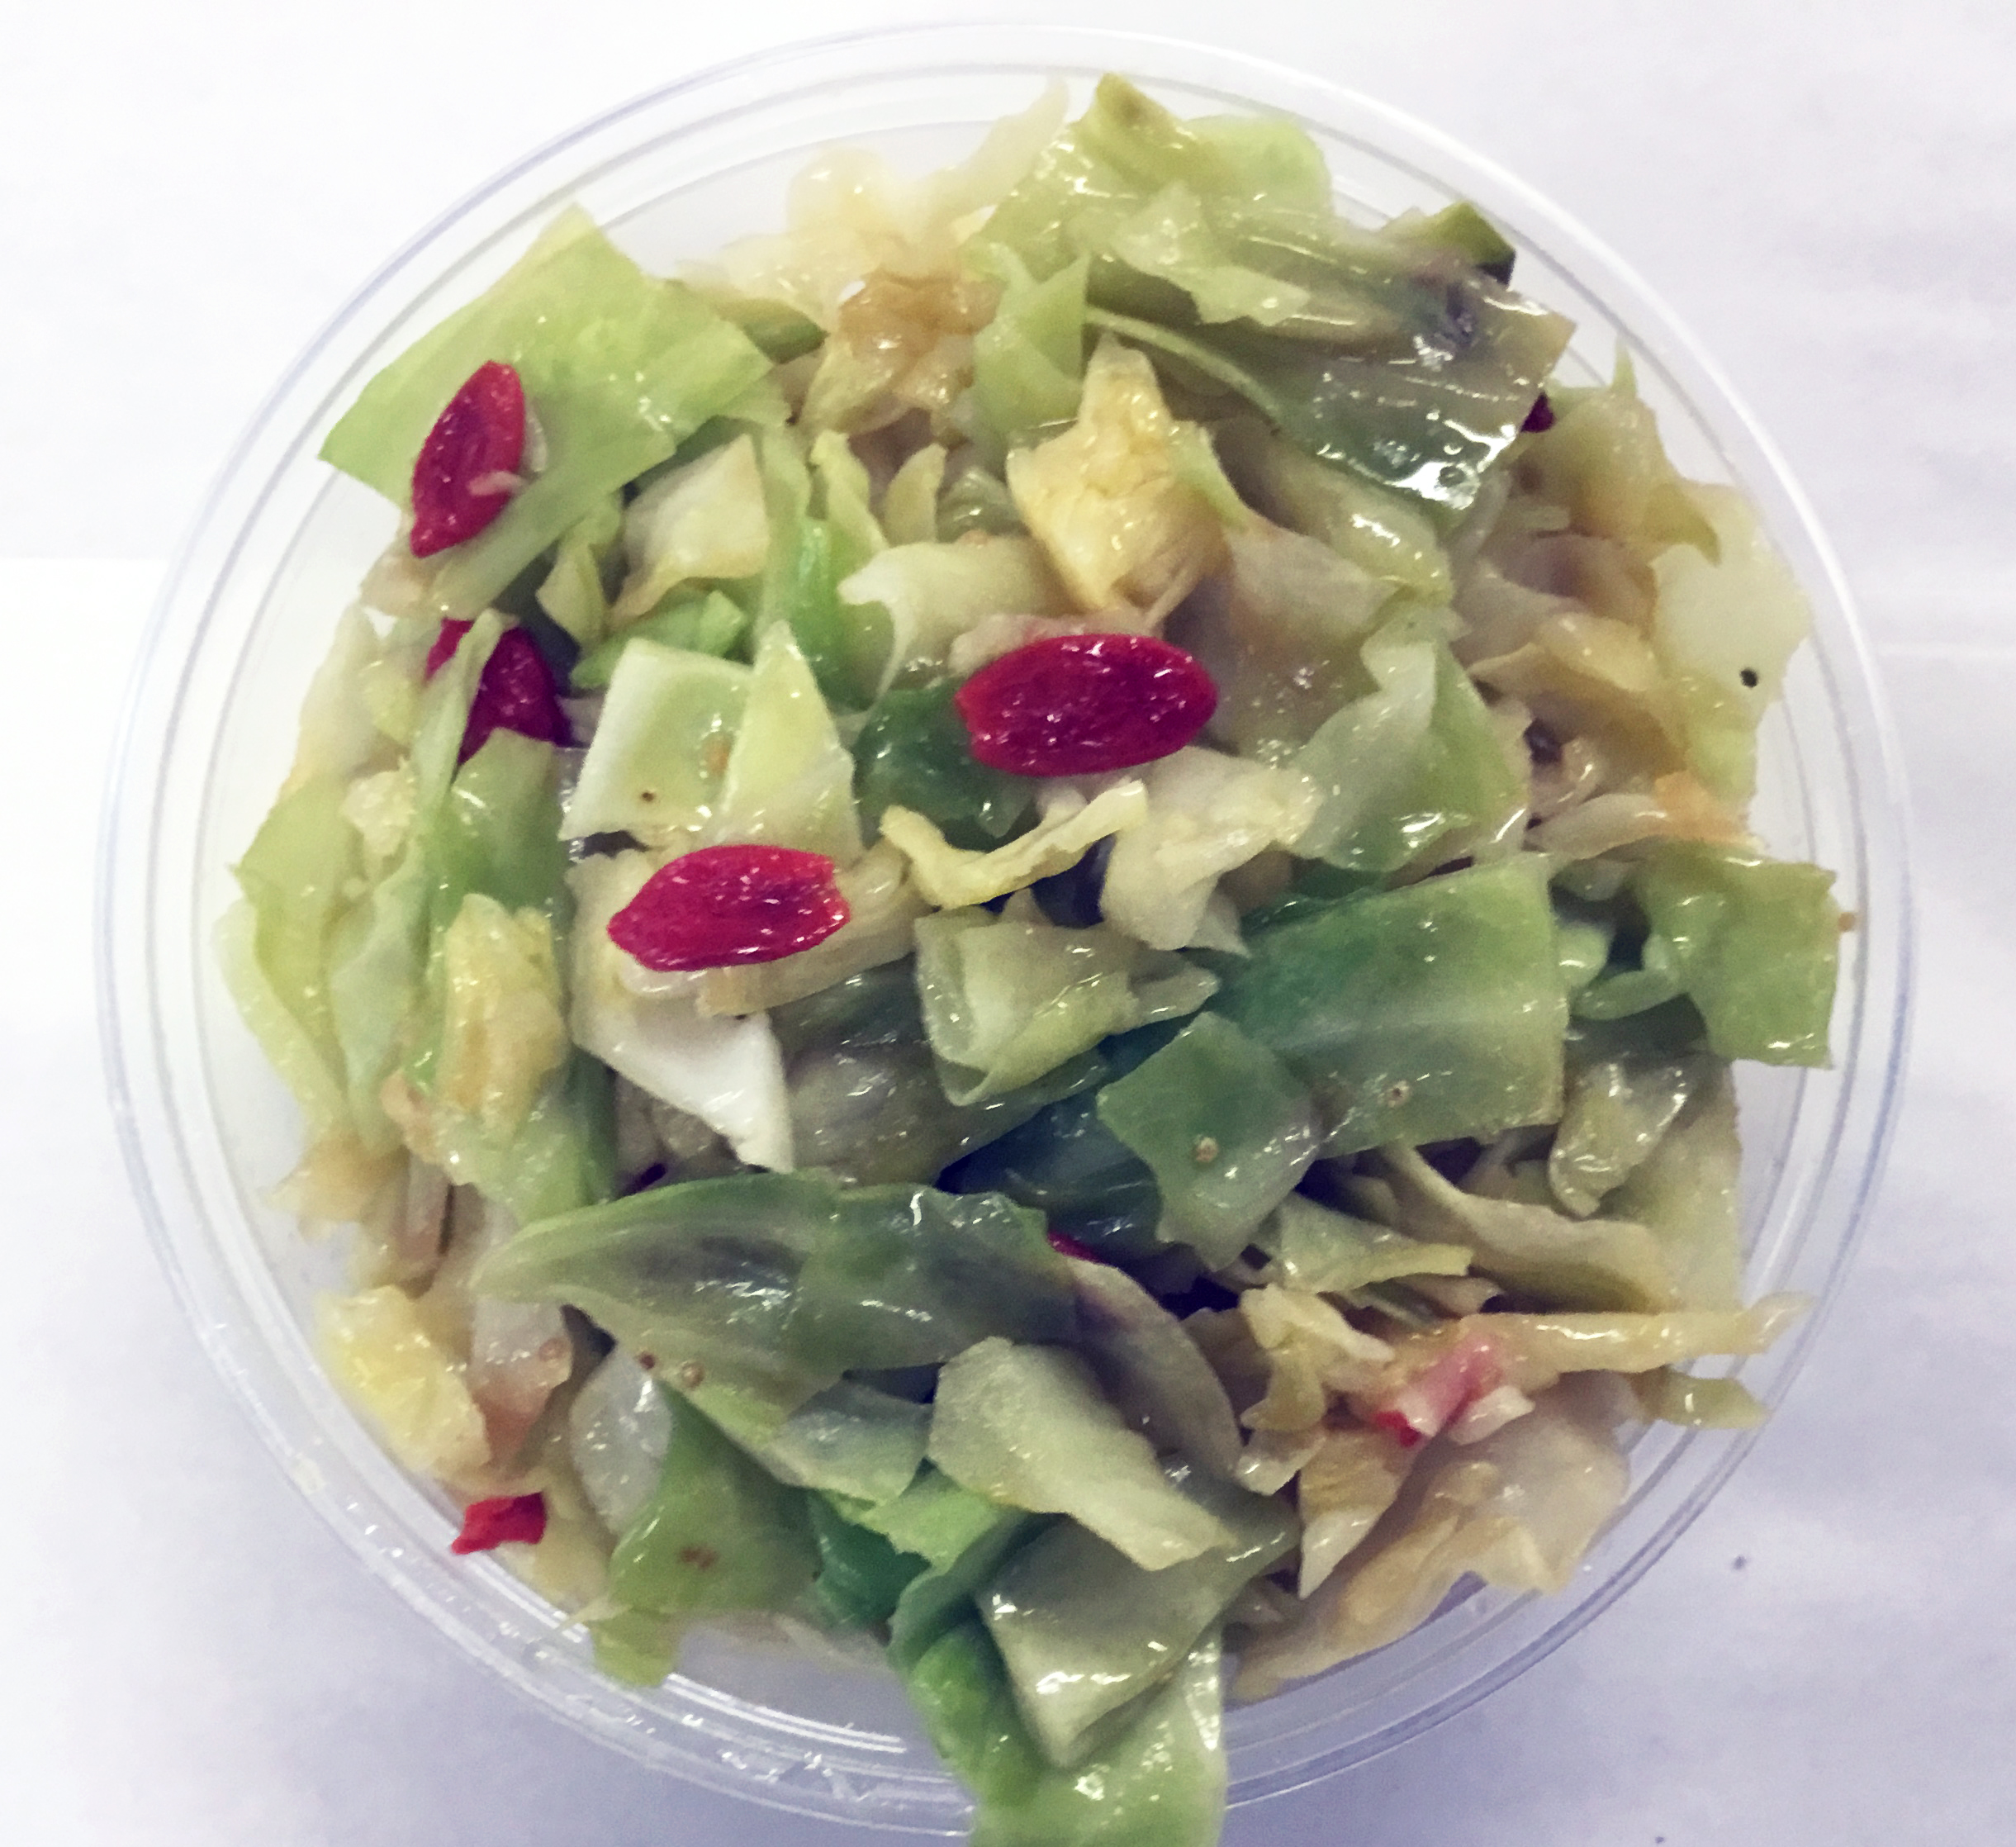 Sauteed cabbage and goji berries.